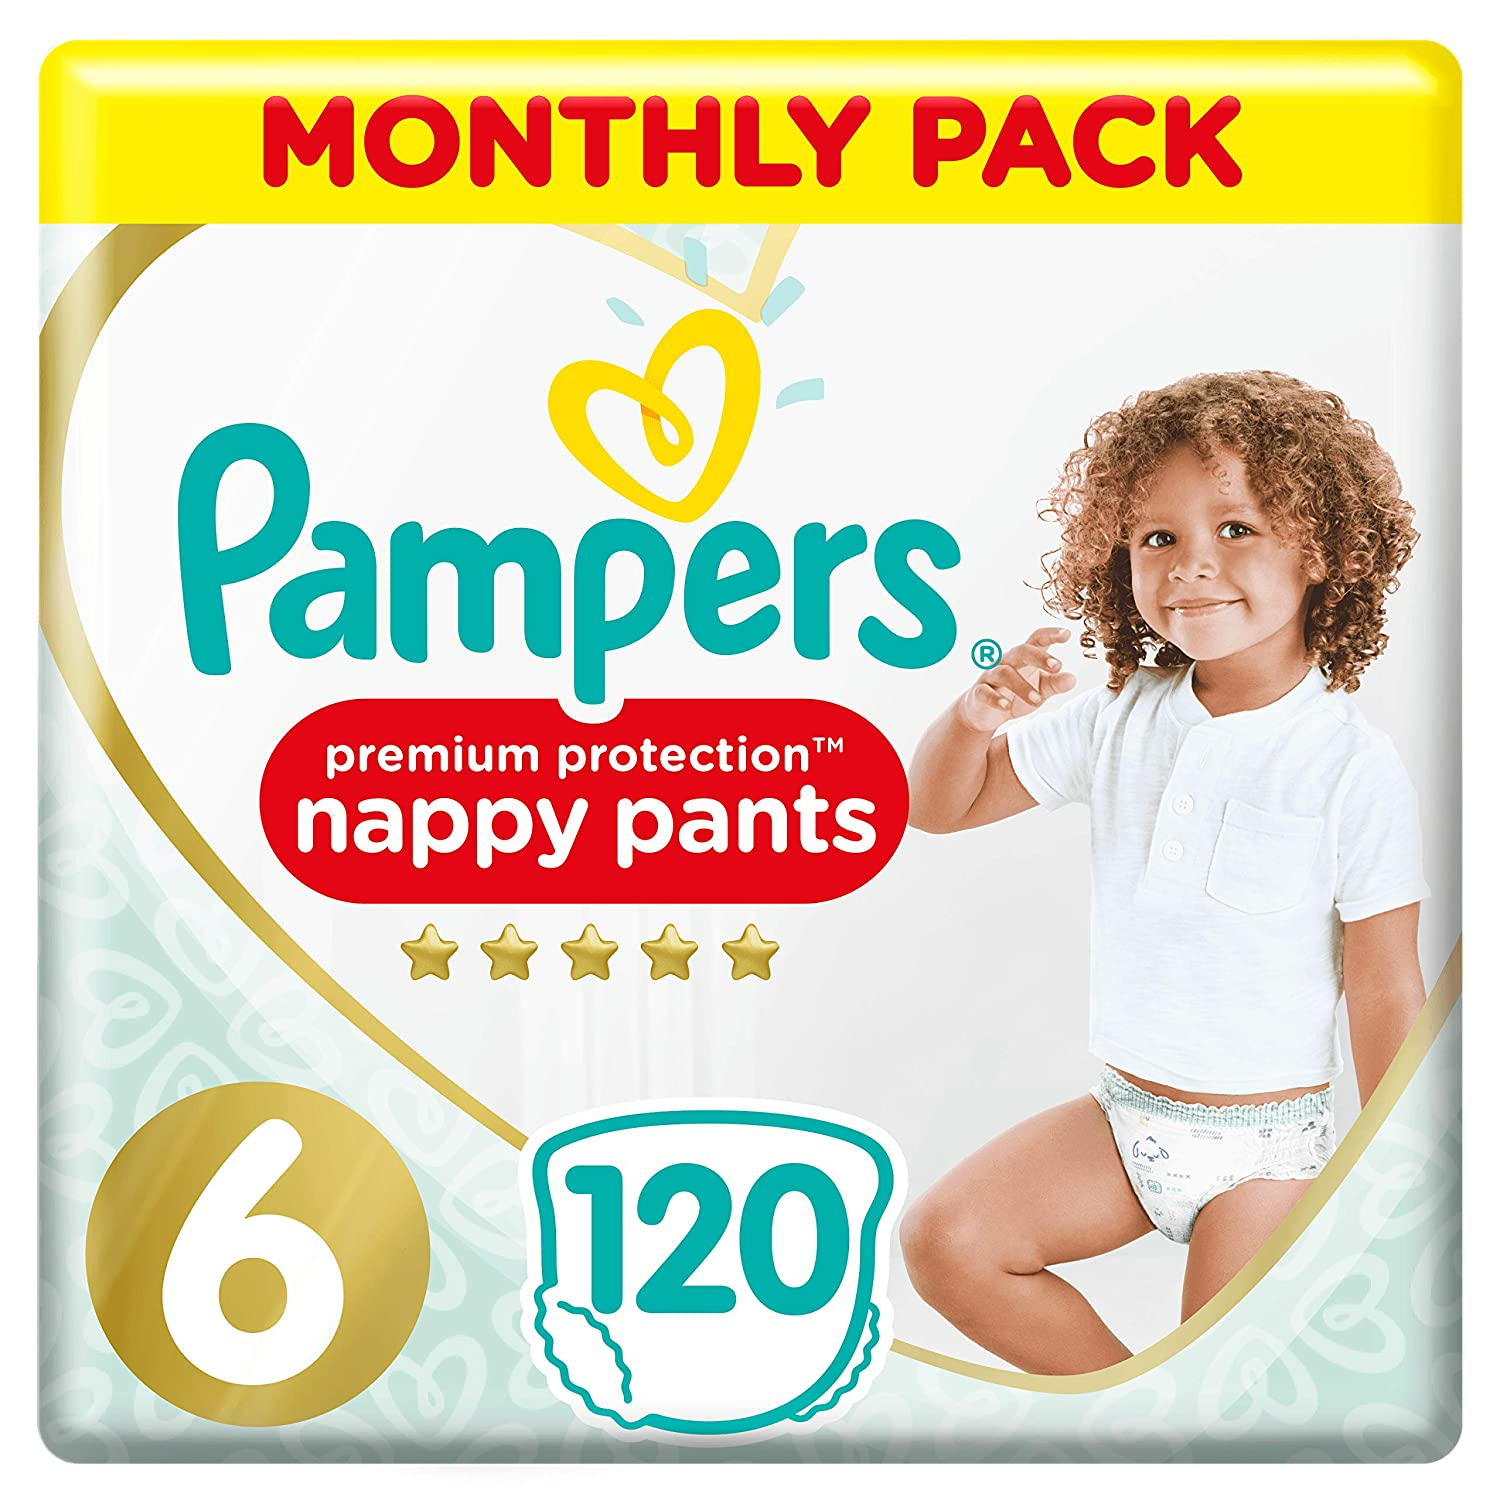 168 Nappy Pants Monthly Saving Pack 9-15 kg Pampers Premium Protection Nappy Pants Size 4 Gentlest Touch On Skin In Easy-On Nappy Pants